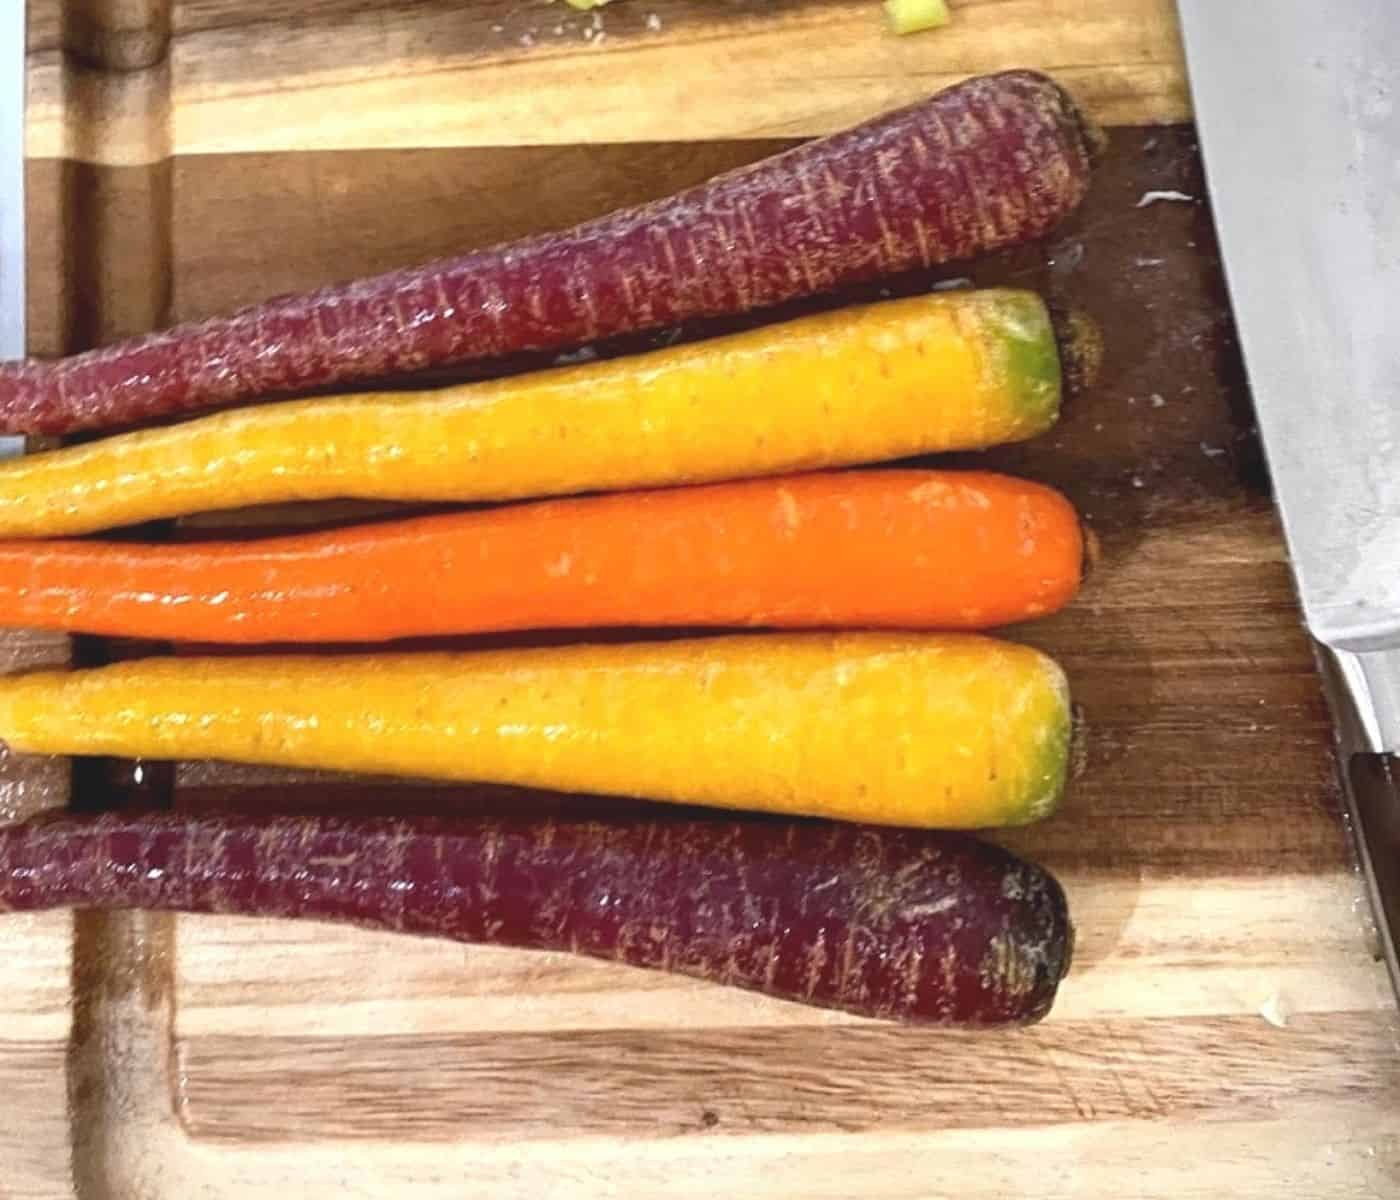 colorful carrots from Farmbox direct on a cutting board.